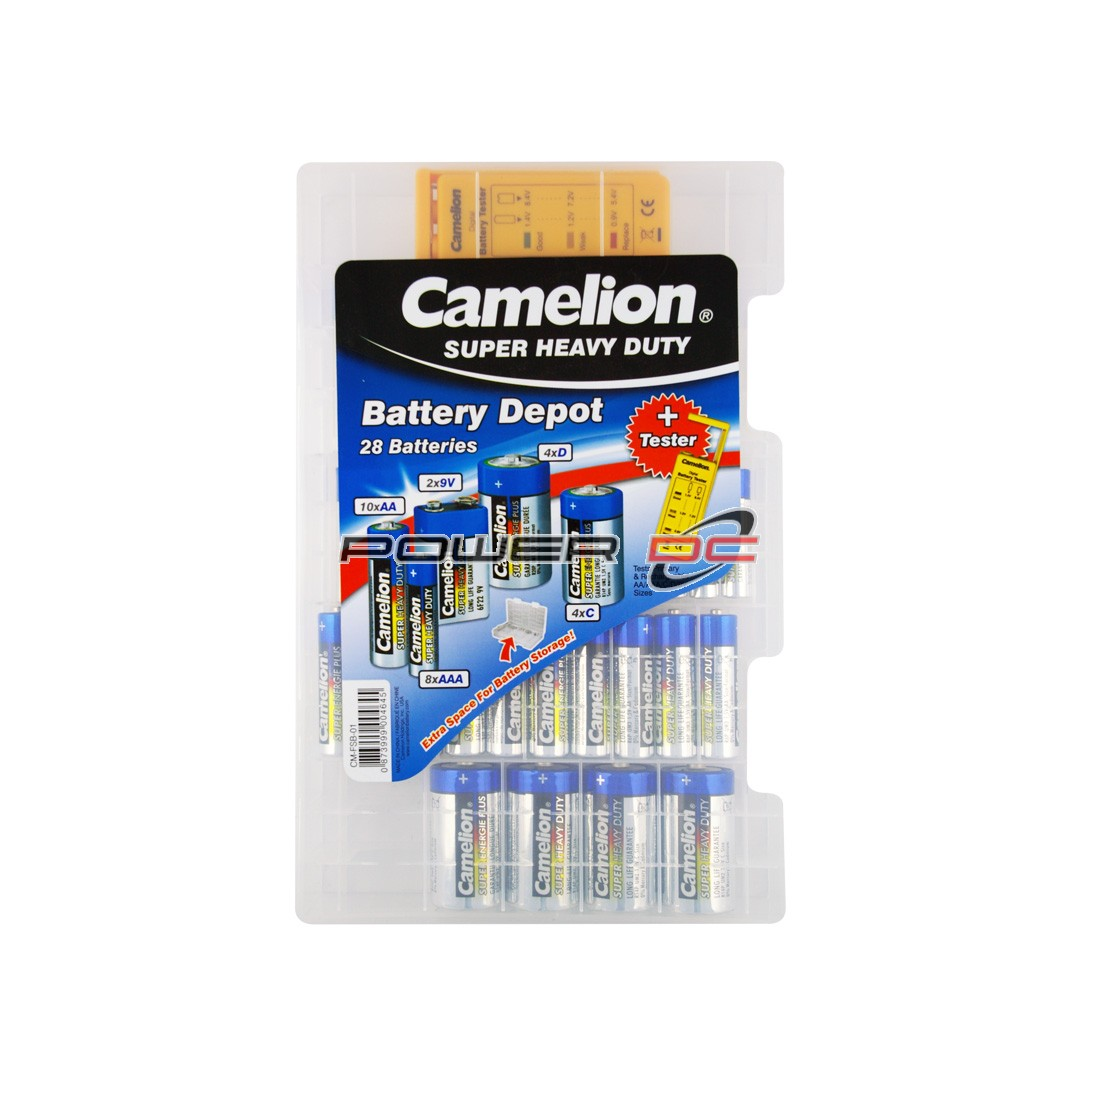 CAMELION SHD FAMILY BATTERY DEPOT